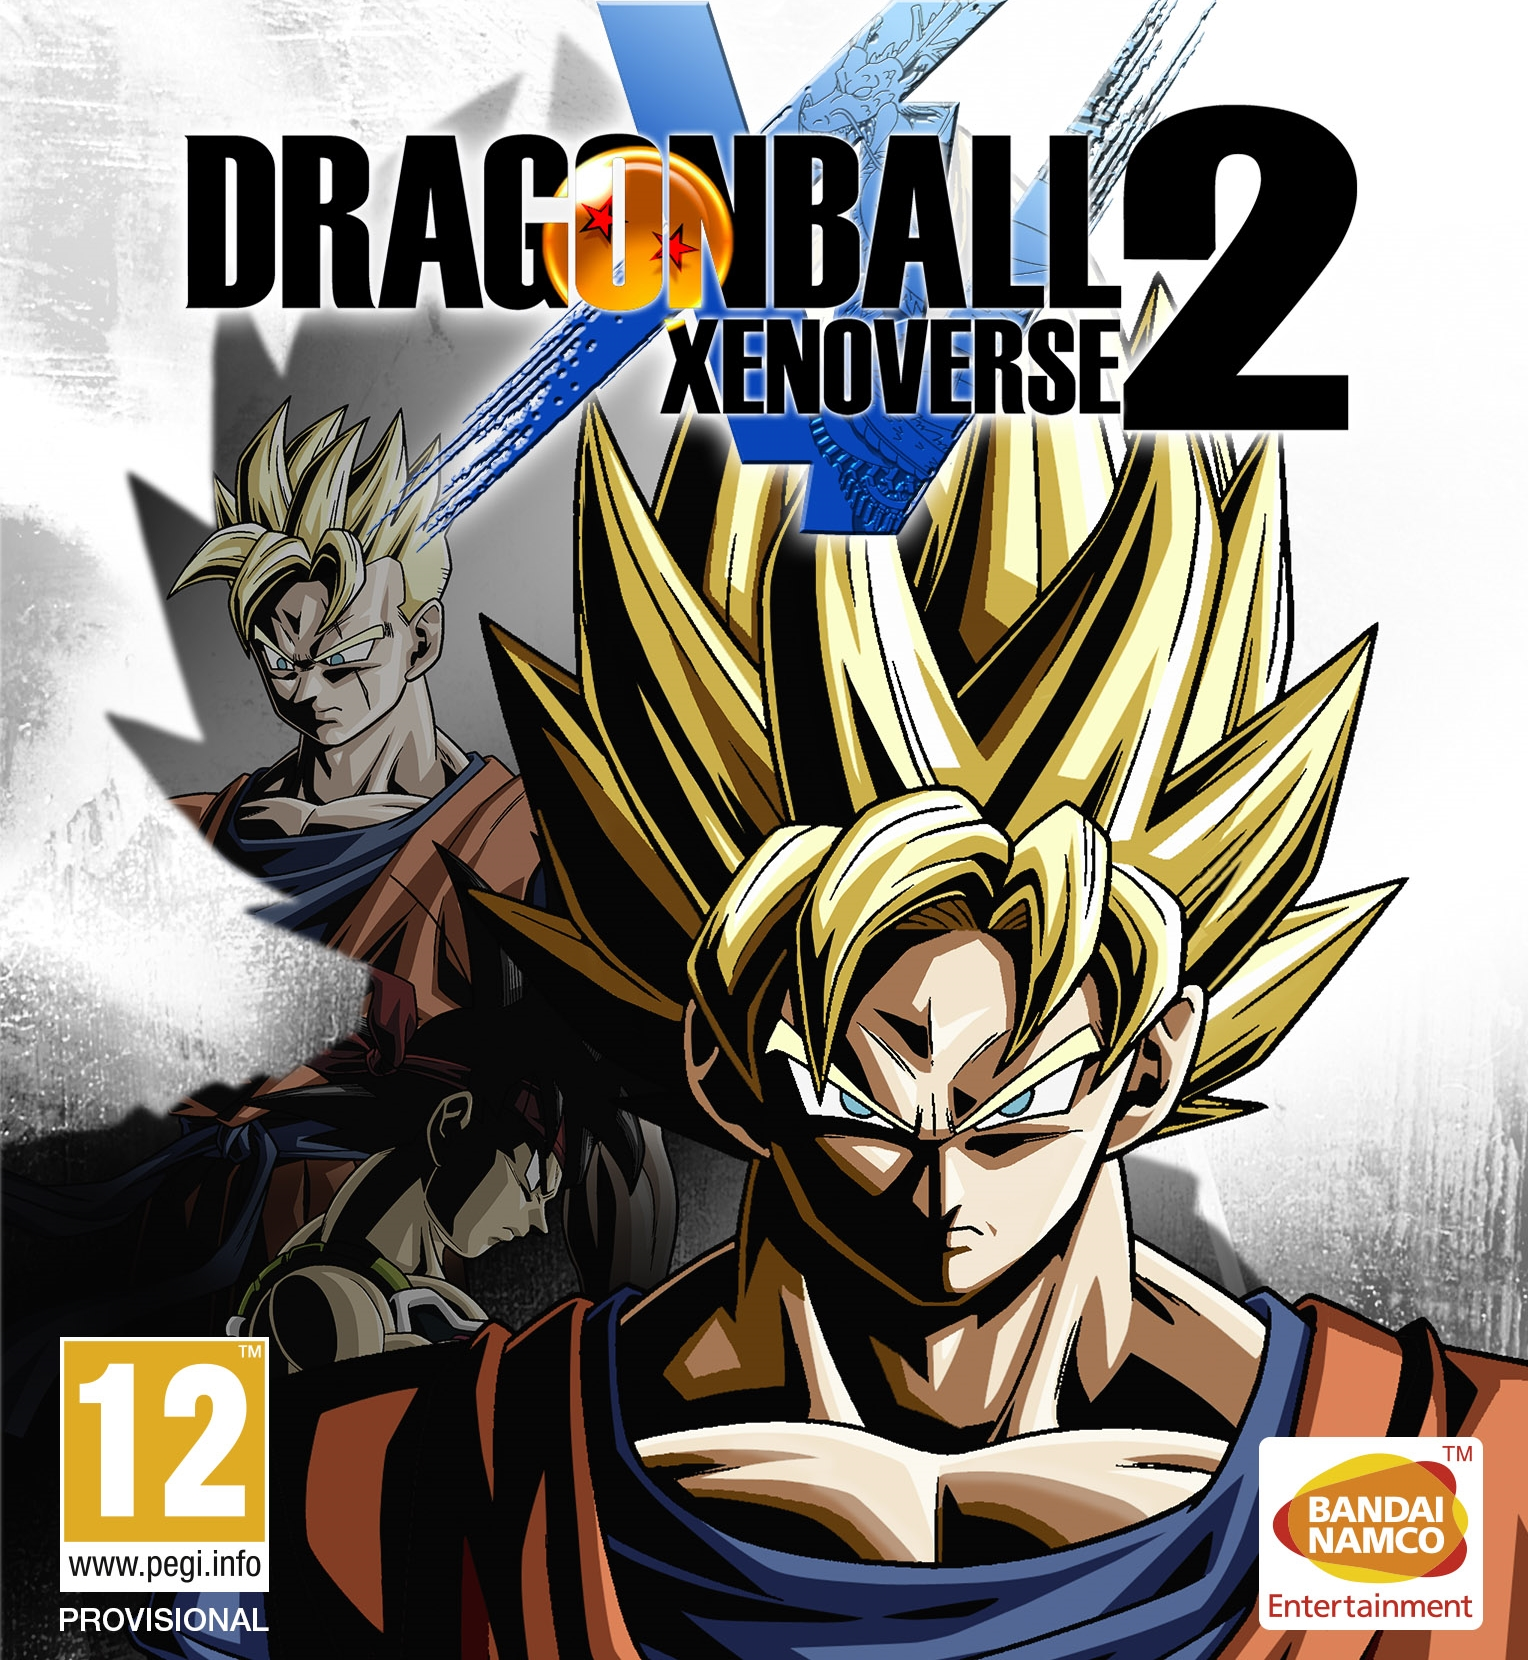 Dragon Ball Xenoverse 2 | Dragon Ball Wiki | FANDOM powered by Wikia